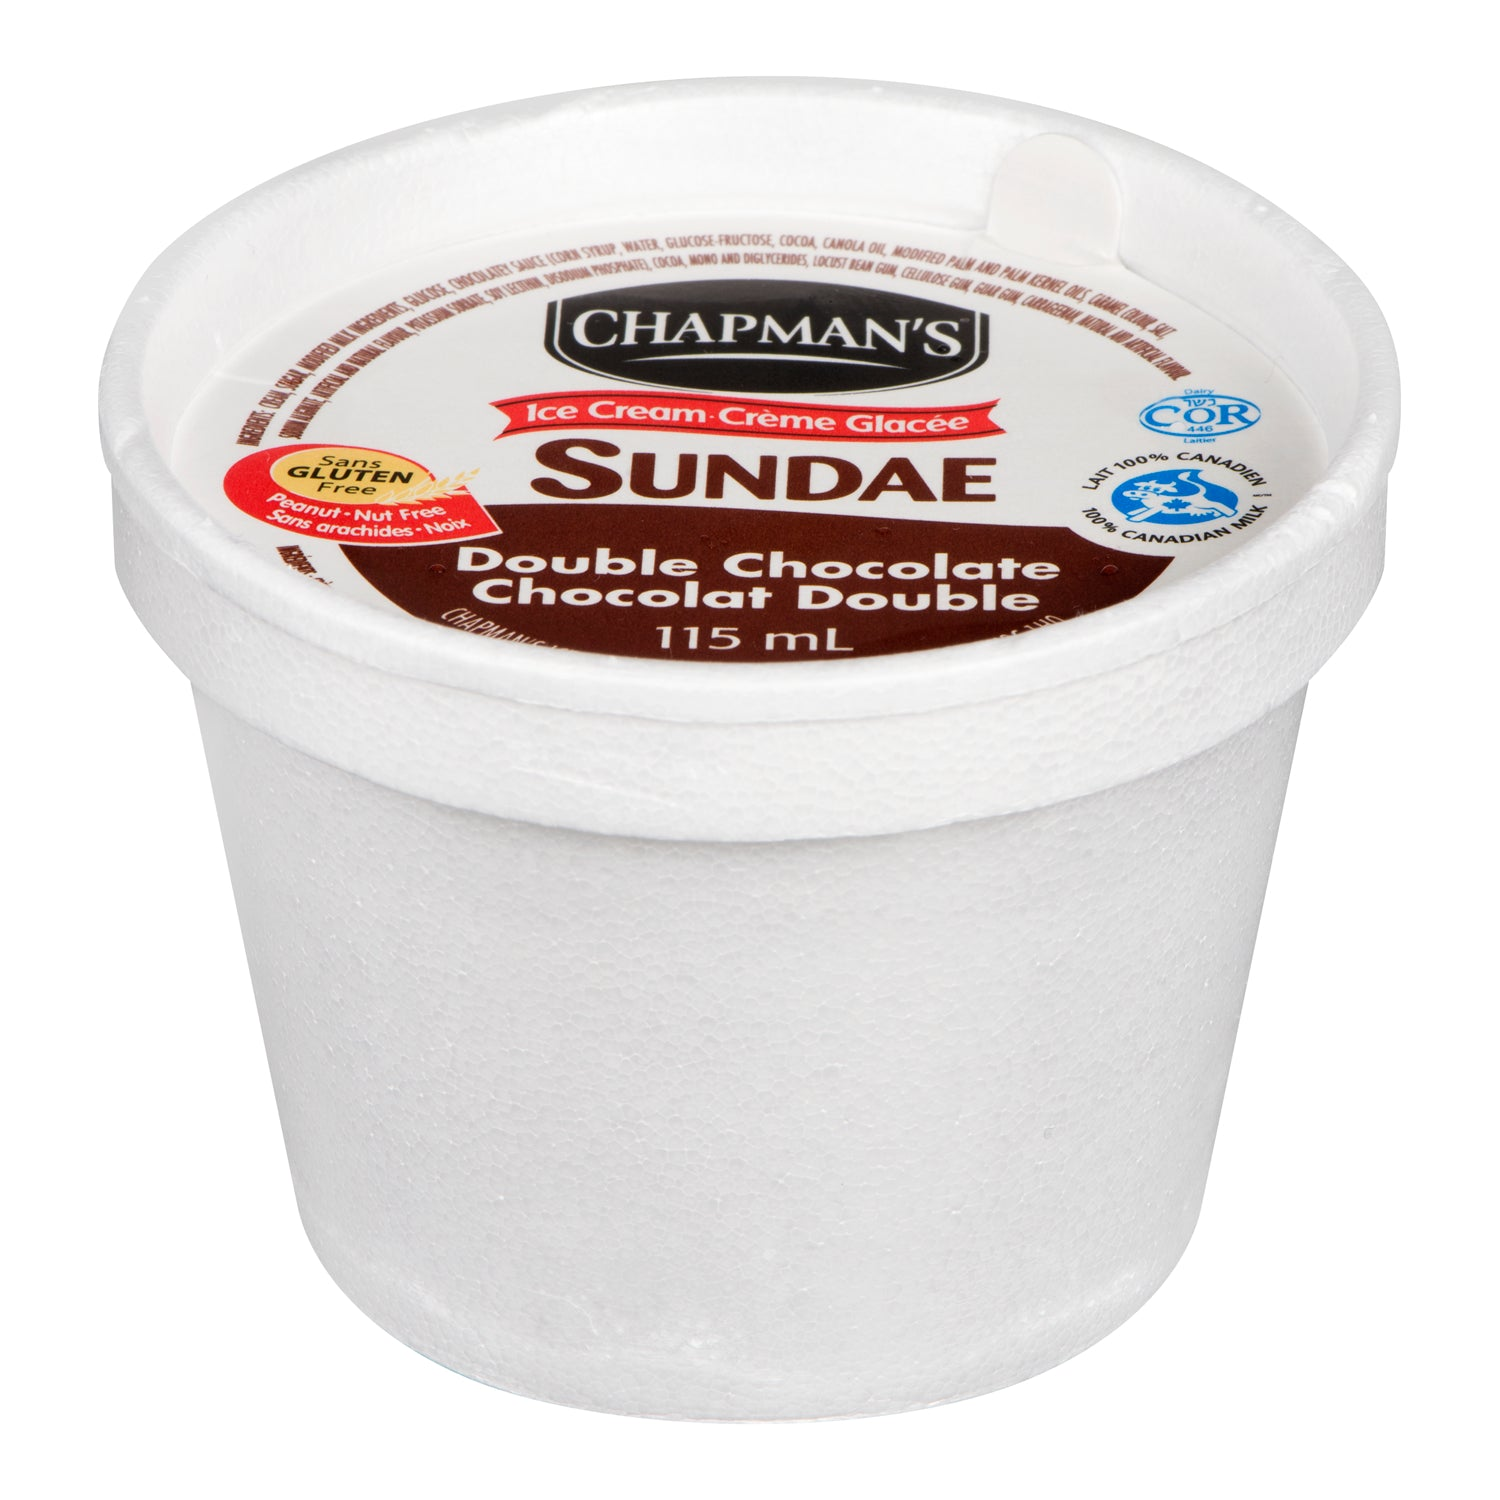 Chapman's Chocolate Ice Cream Cups 115 ml - 24 Pack [$0.54/cup]